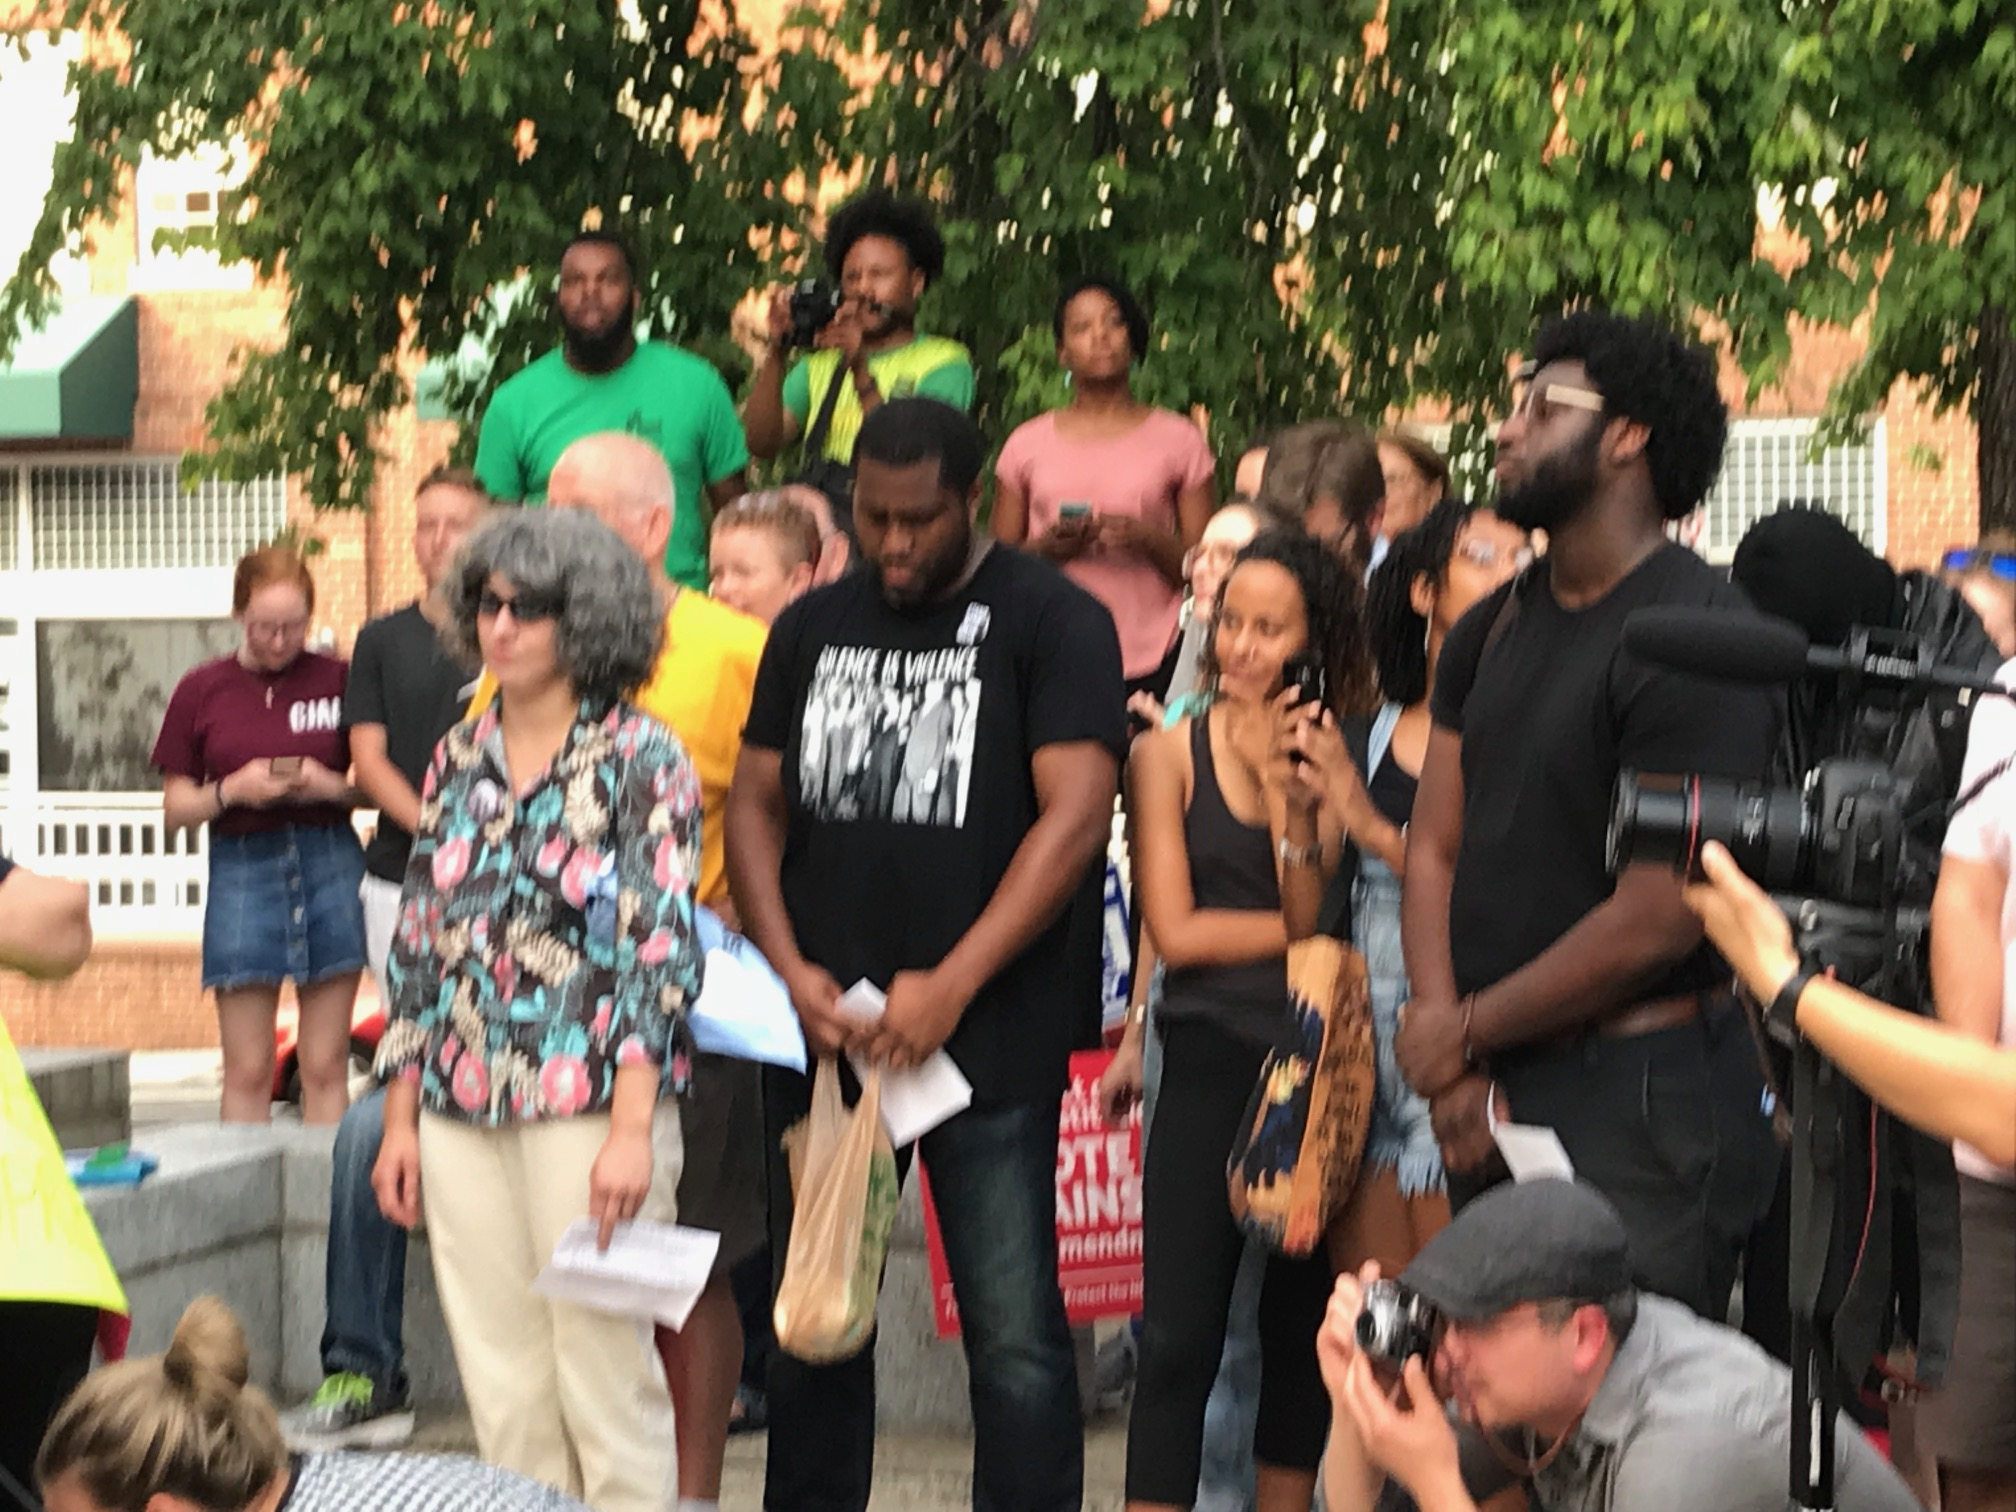 <div class='meta'><div class='origin-logo' data-origin='WTVD'></div><span class='caption-text' data-credit='Robert Judson'>Hundreds of protesters gathered Monday at the Silent Sam Confederate statue on the UNC-Chapel Hill campus.</span></div>